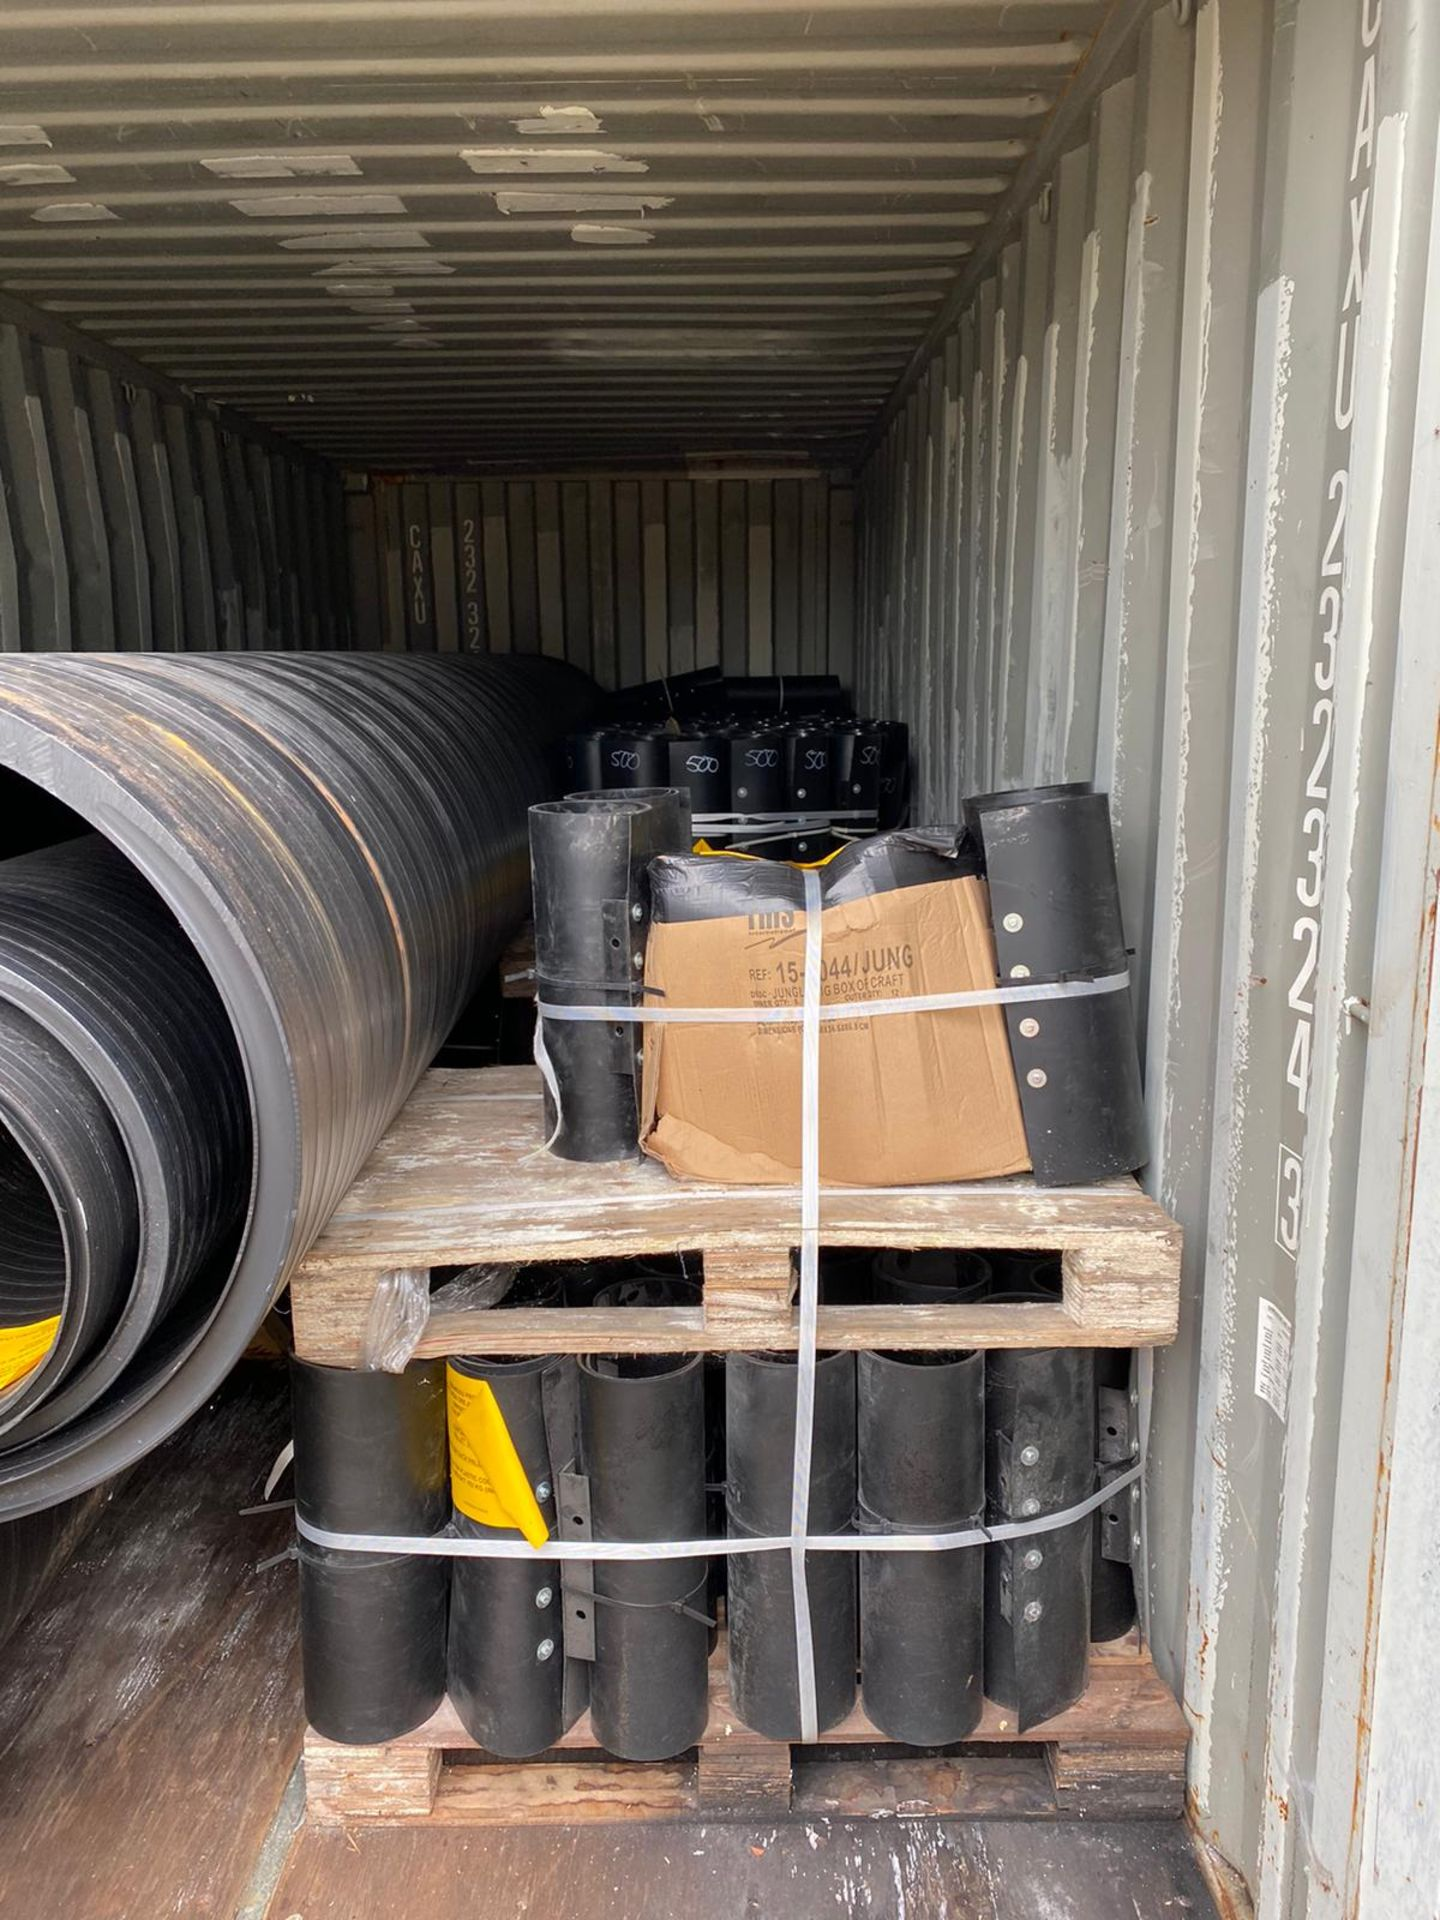 1440 Metres of New (Unused) HDPE Culvert Pipes in 14 x 20FT ISO Containers - Image 2 of 7